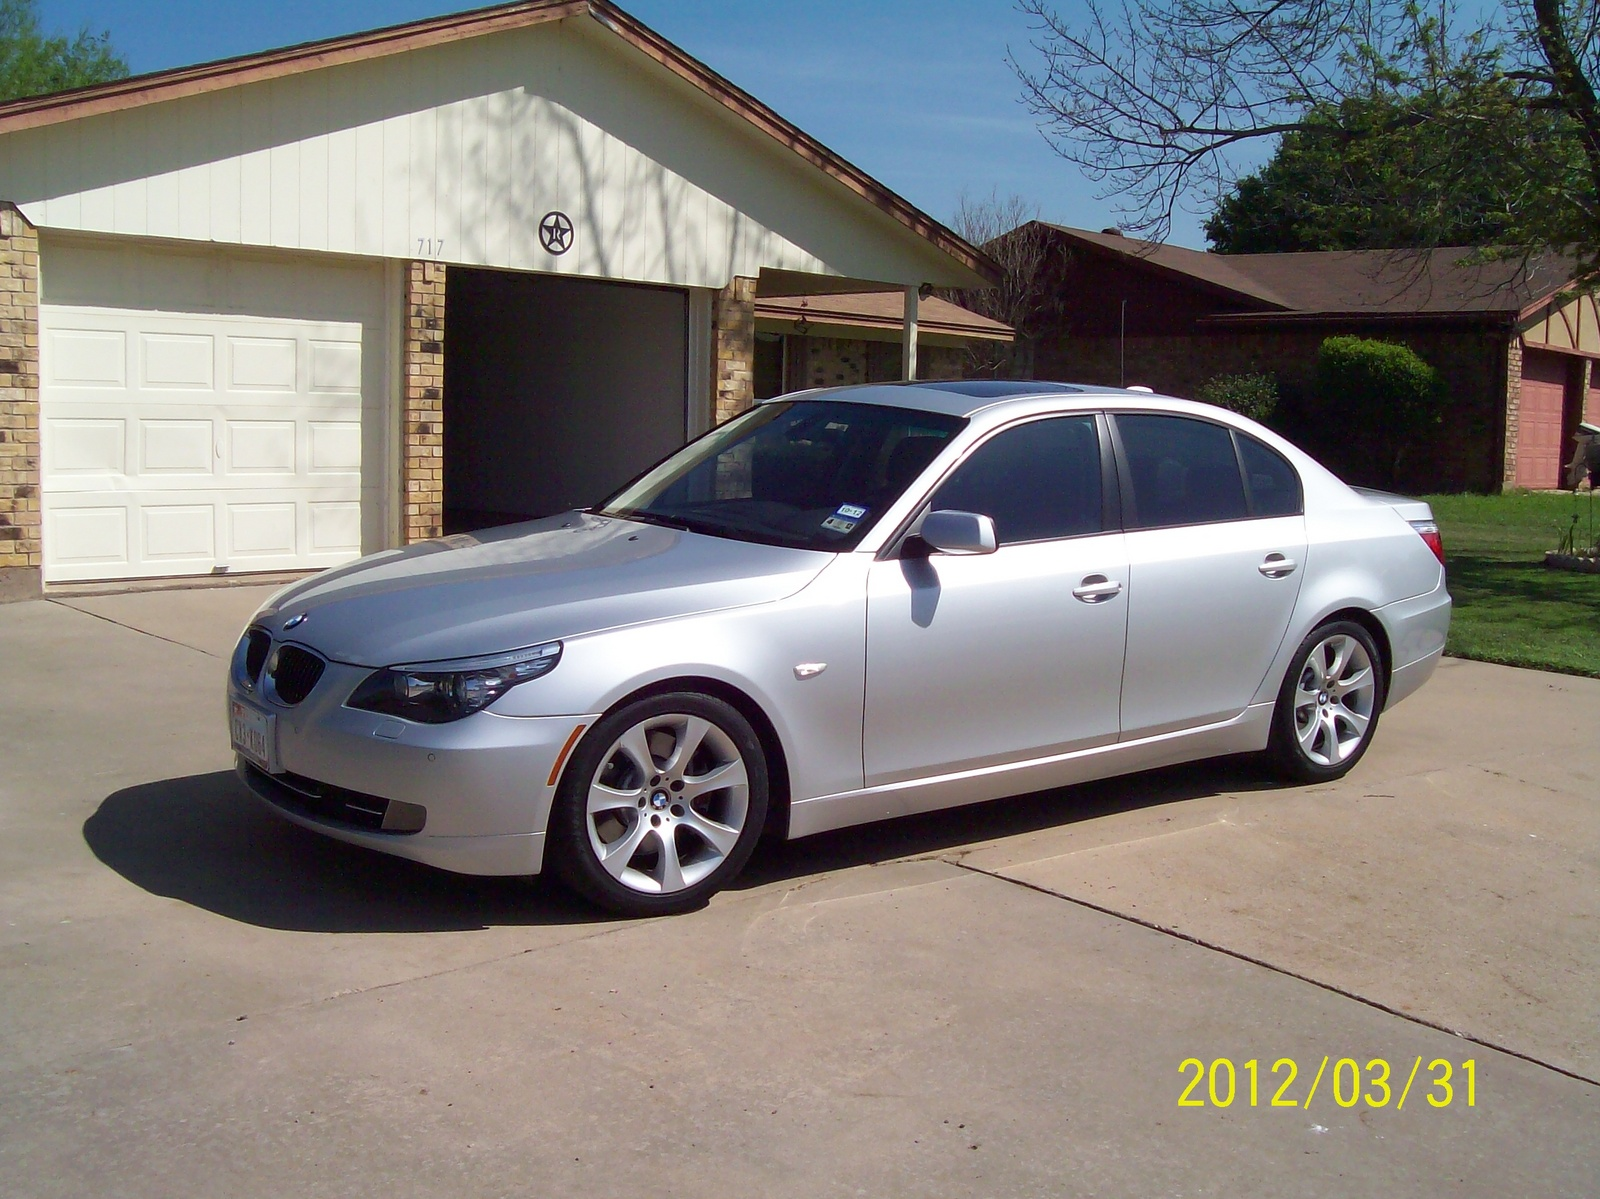 BMW 5 series 528i 2008 photo - 5